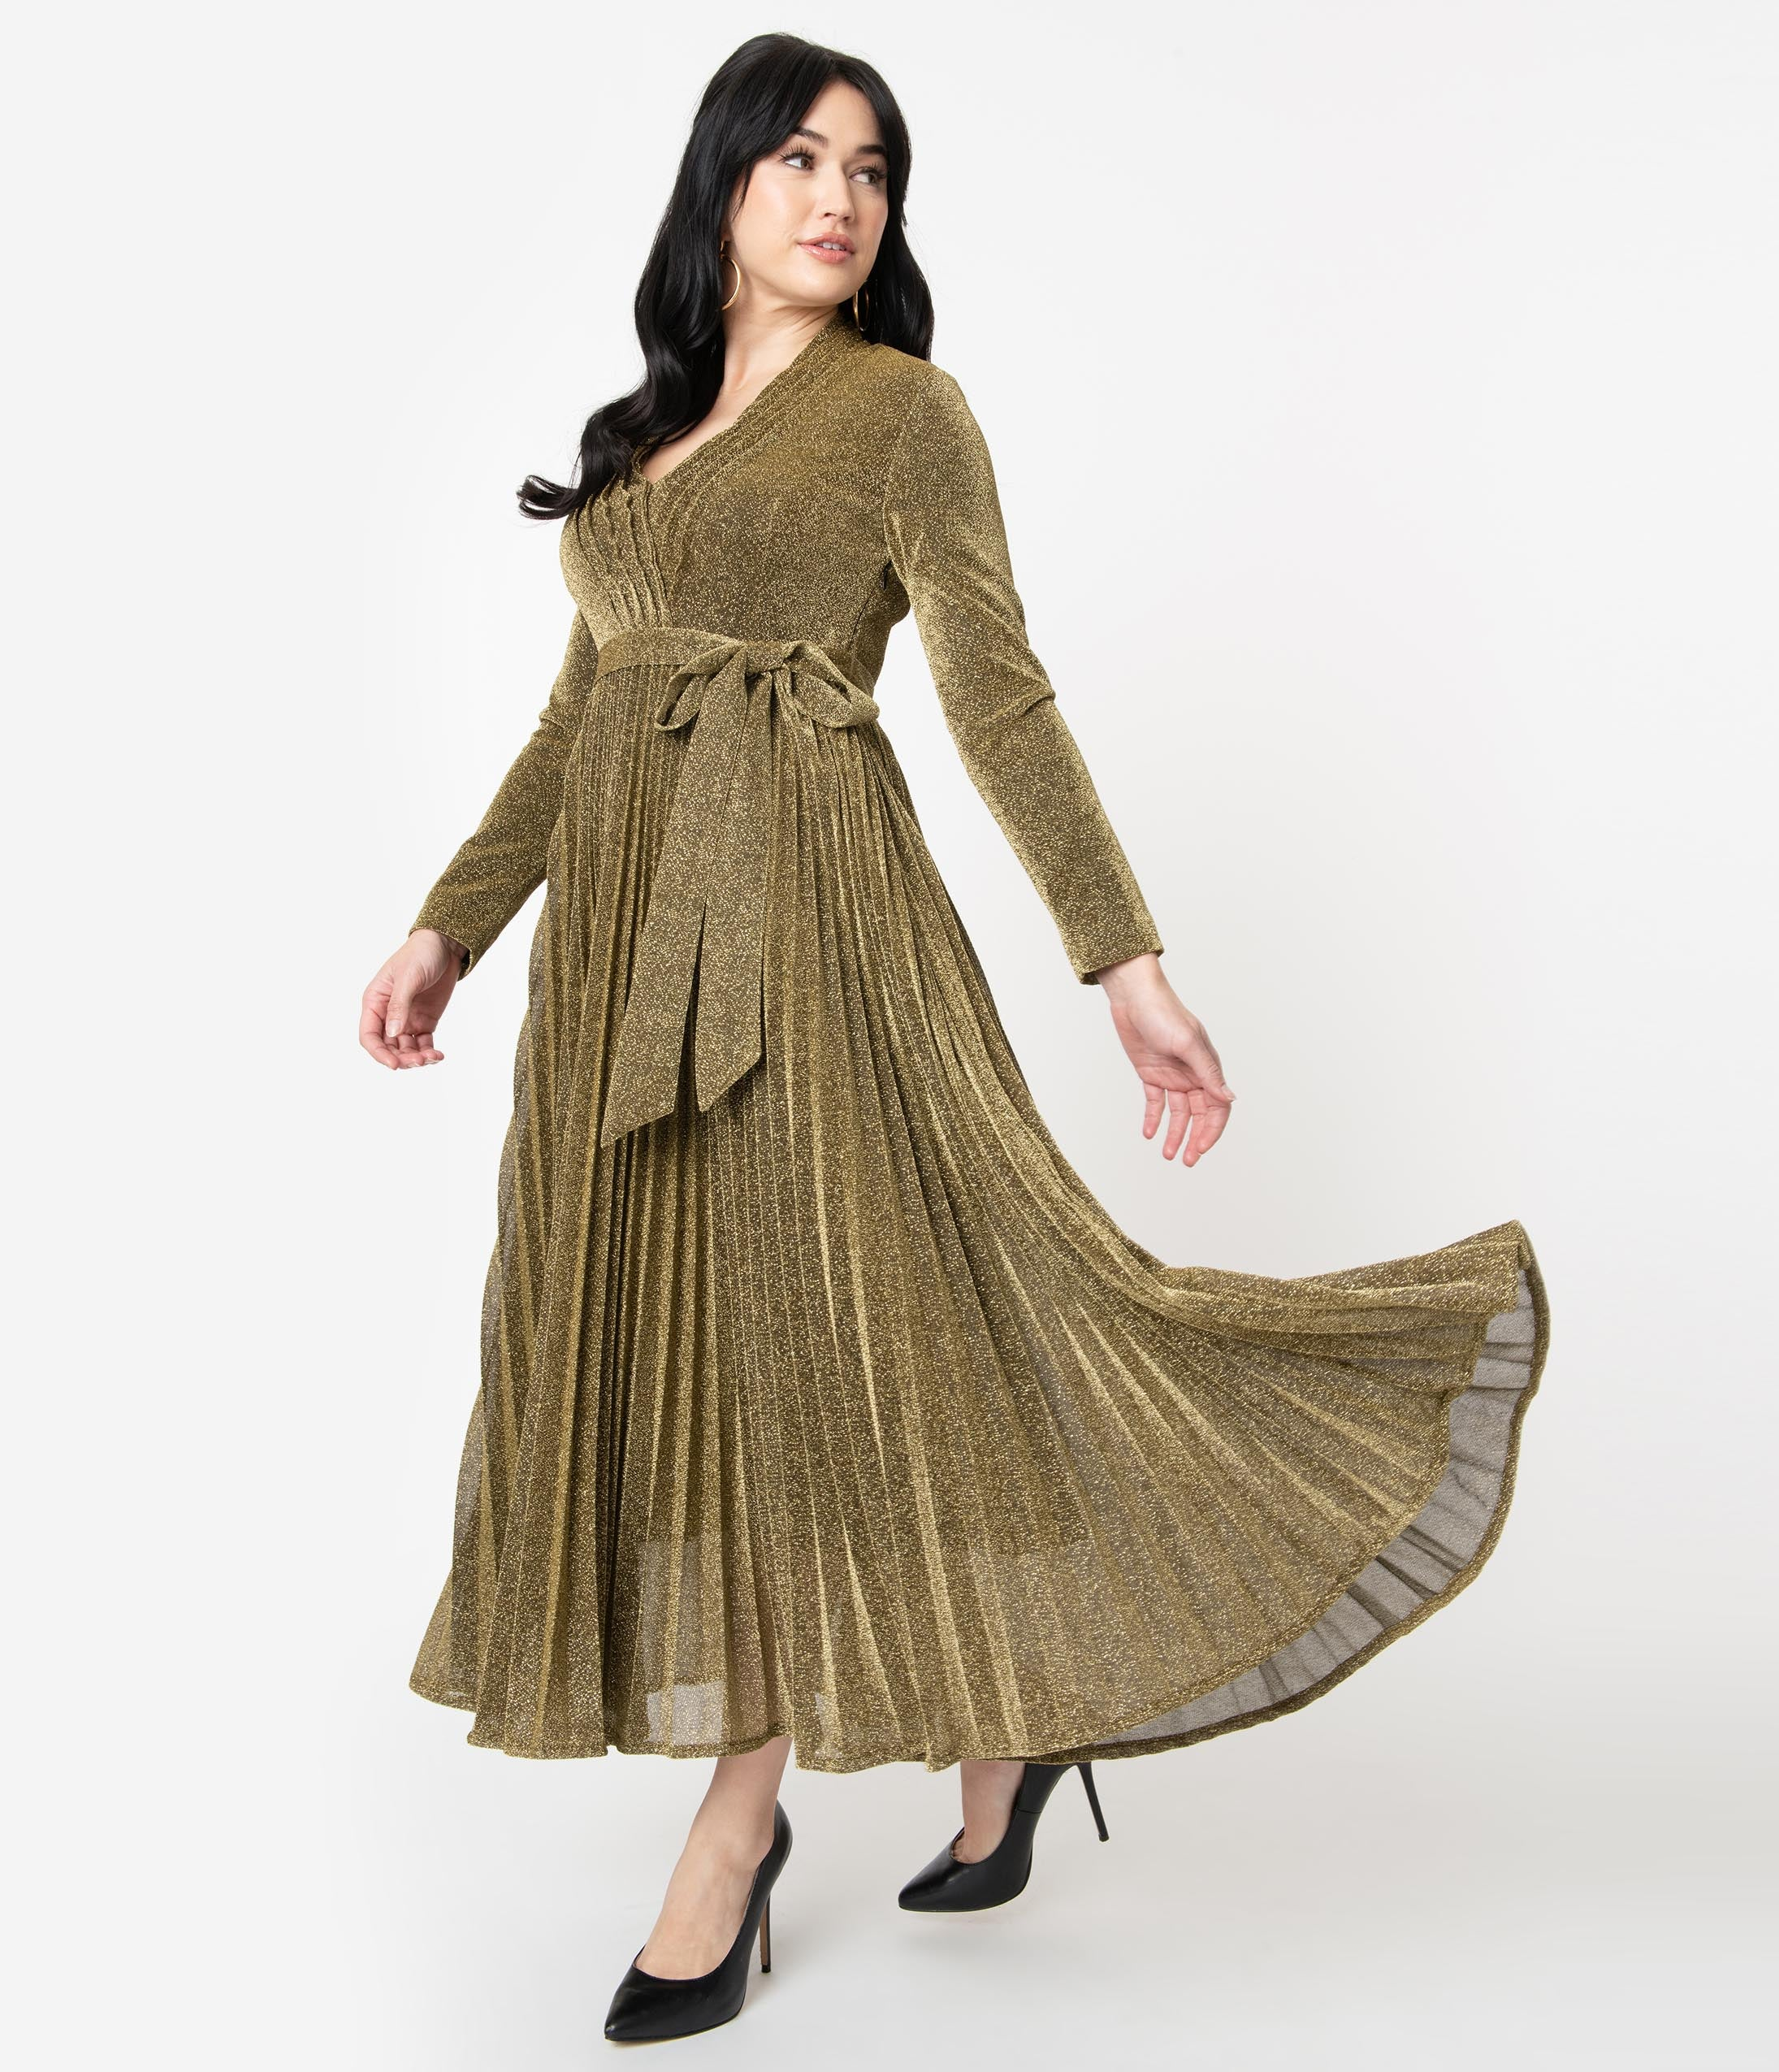 70s Prom, Formal, Evening, Party Dresses Metallic Gold Pleated Maxi Dress $88.00 AT vintagedancer.com